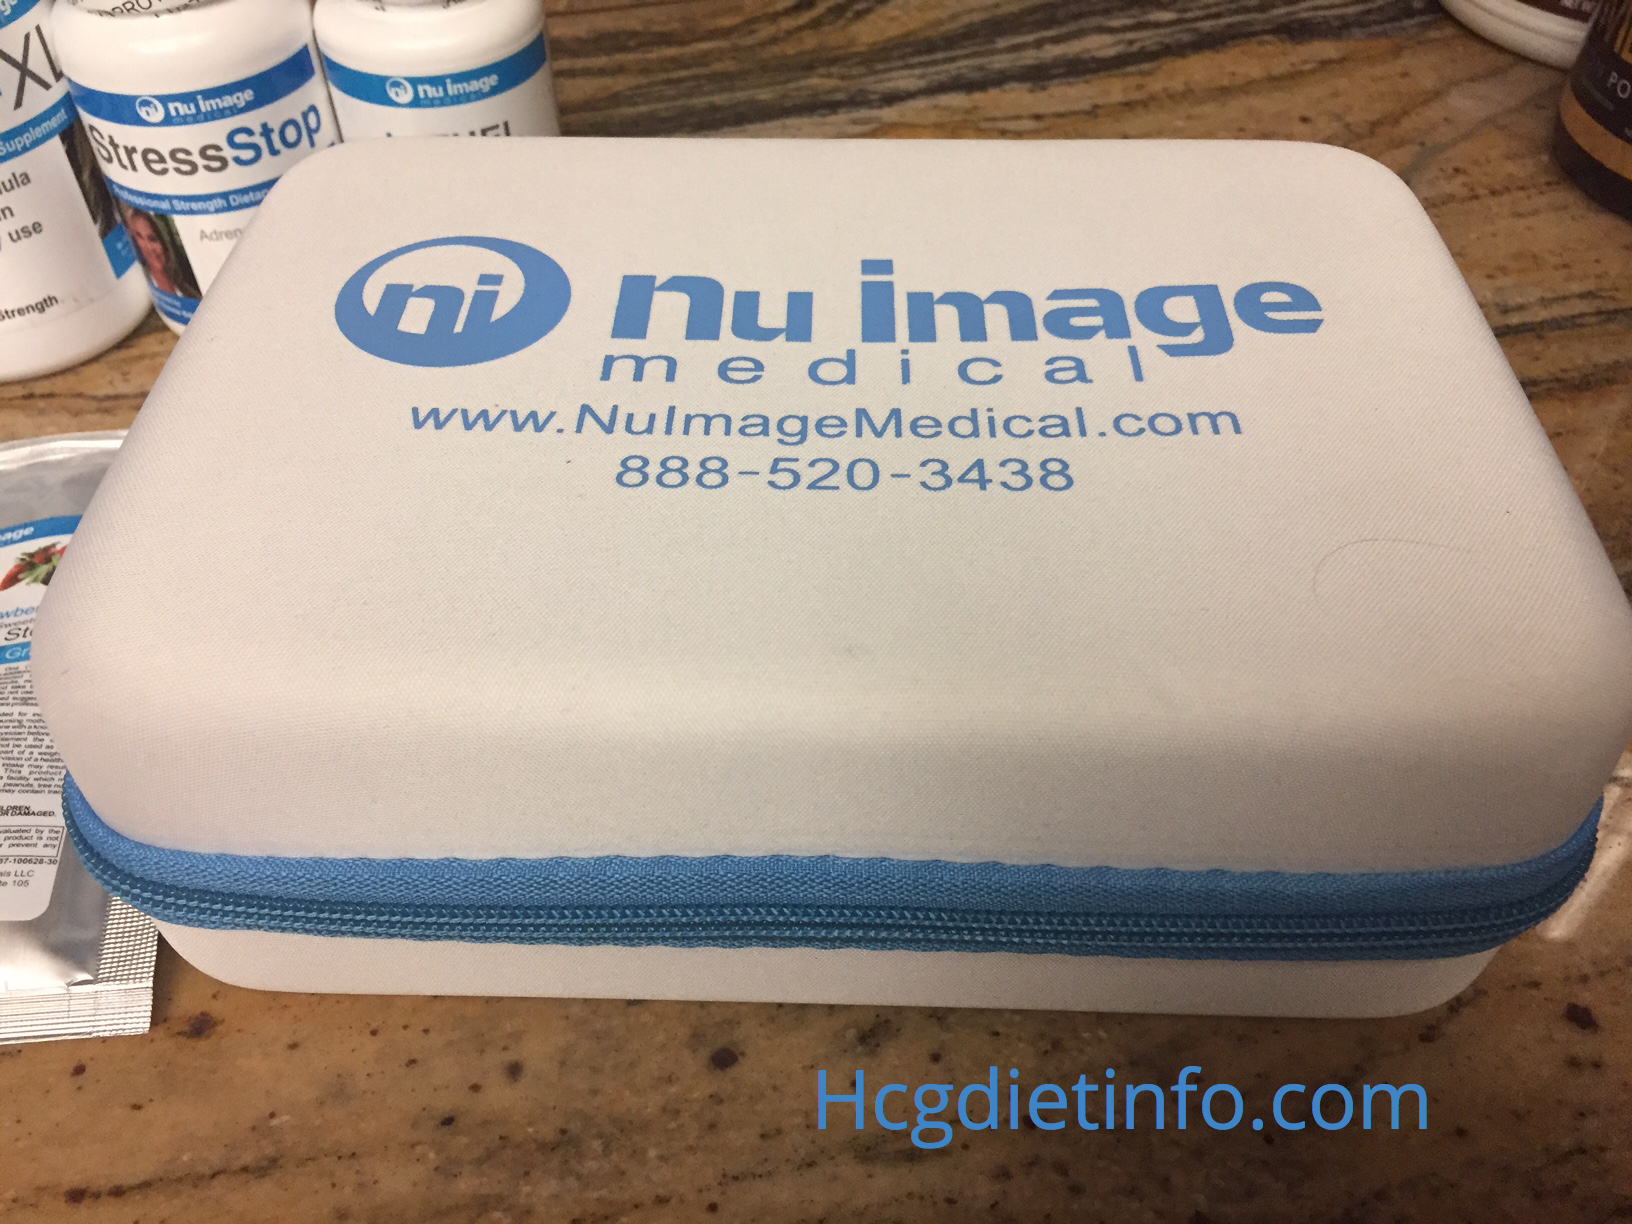 Nu Image Medical - Insulated Packaging